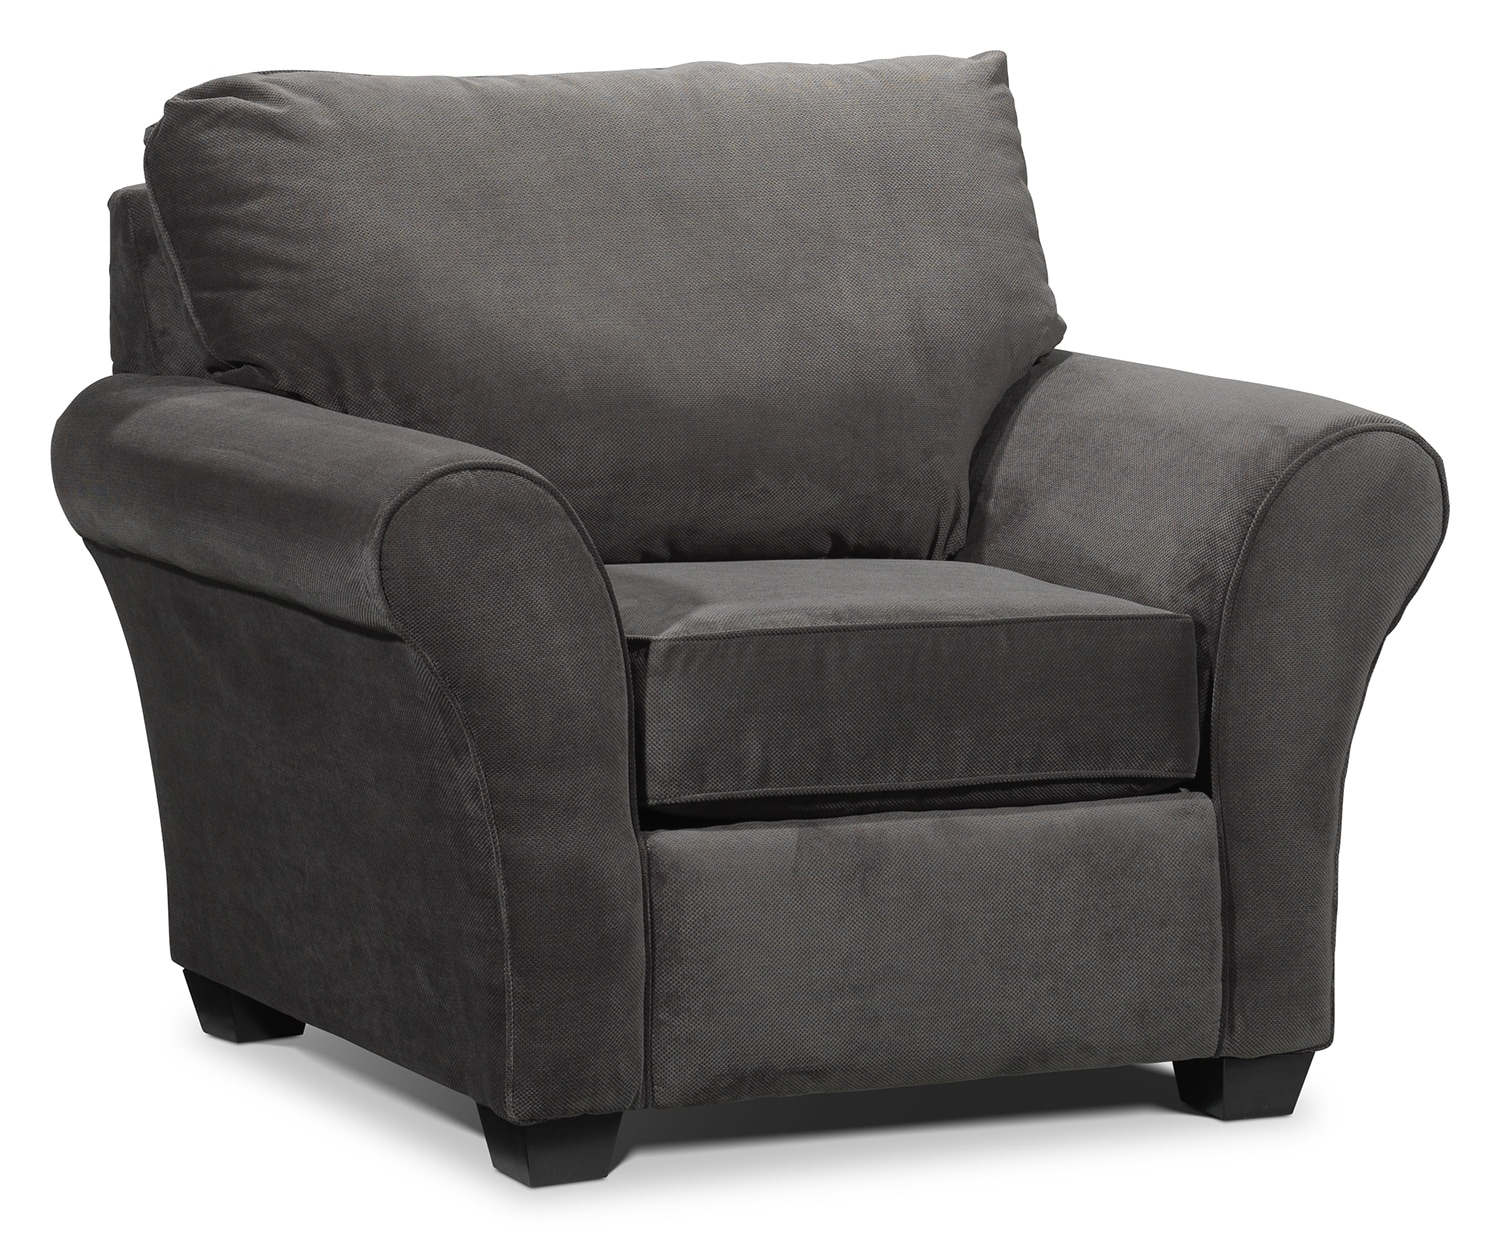 Langley Chair - Charcoal